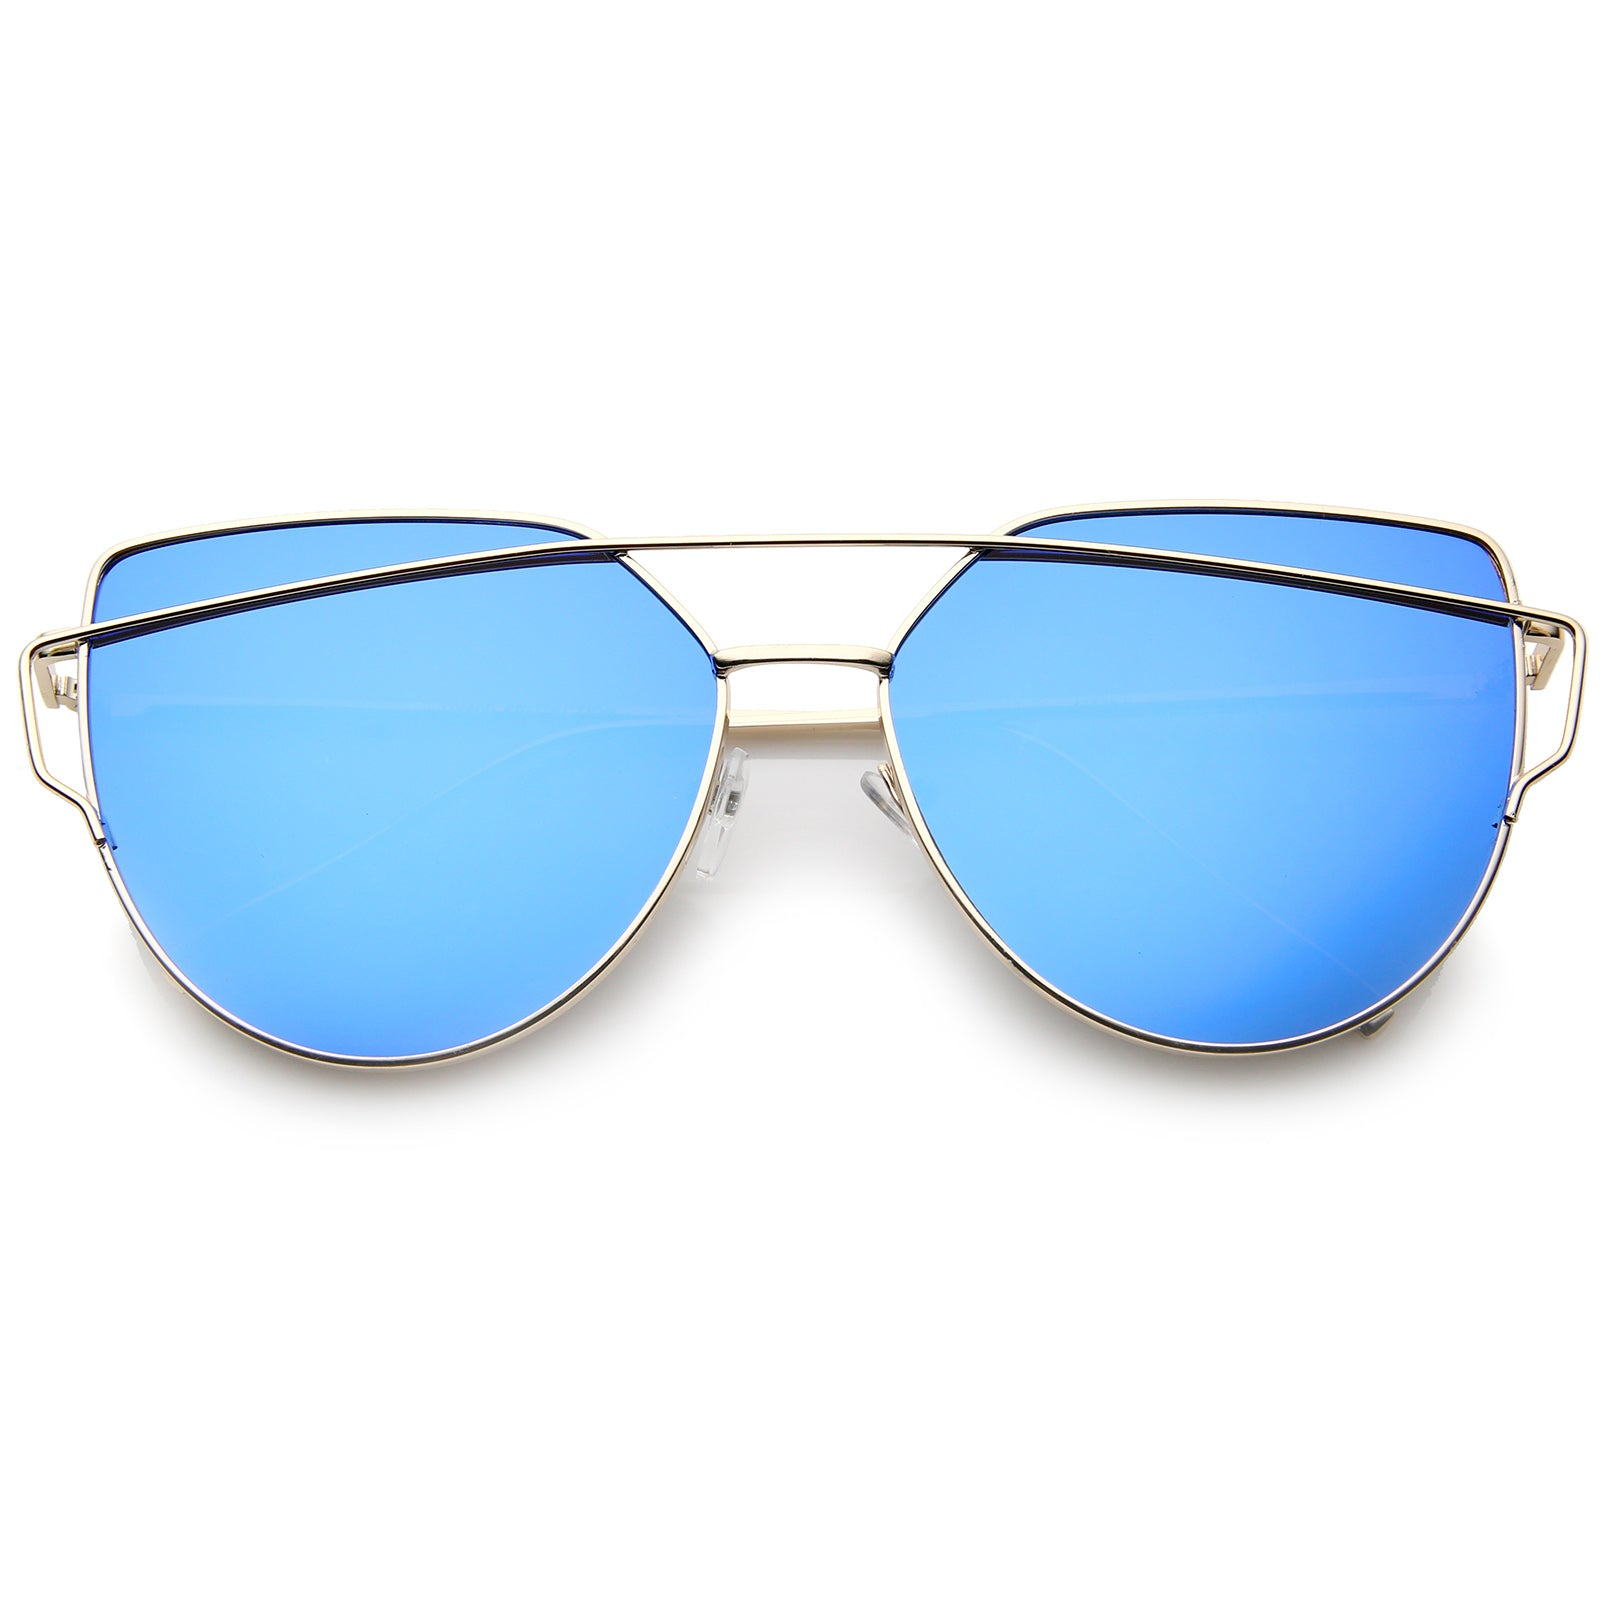 Oversize Metal Frame Thin Temple Color Mirror Flat Lens Aviator Sunglasses 62mm - sunglass.la - 9